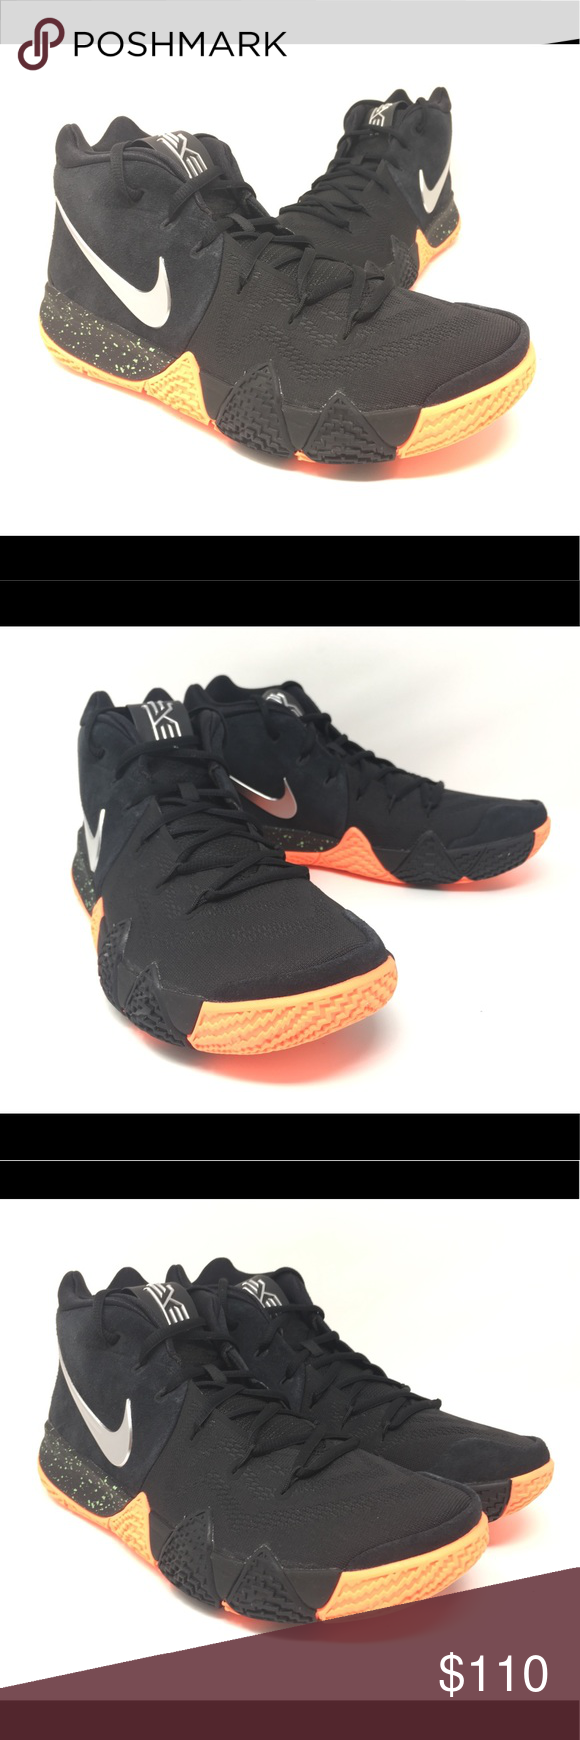 new style a6130 fde02 sweden nike kyrie 4 womens orange silver f25b7 0e60c